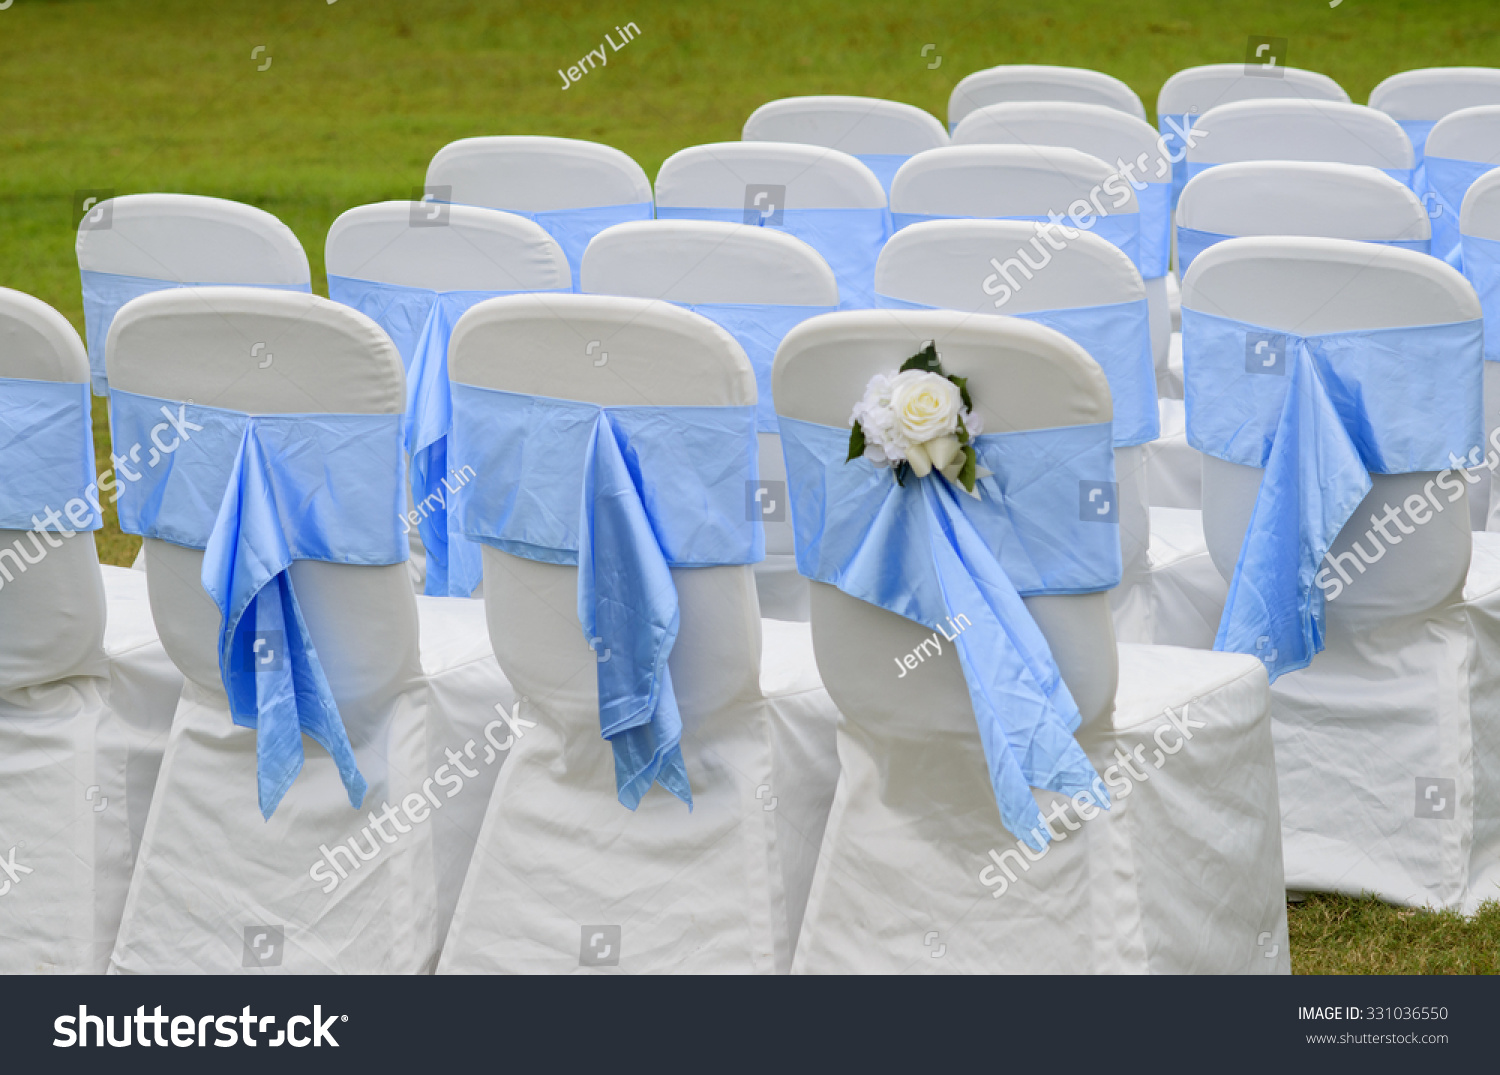 Beautiful White Wedding Chairs Decorated With Blue Bows